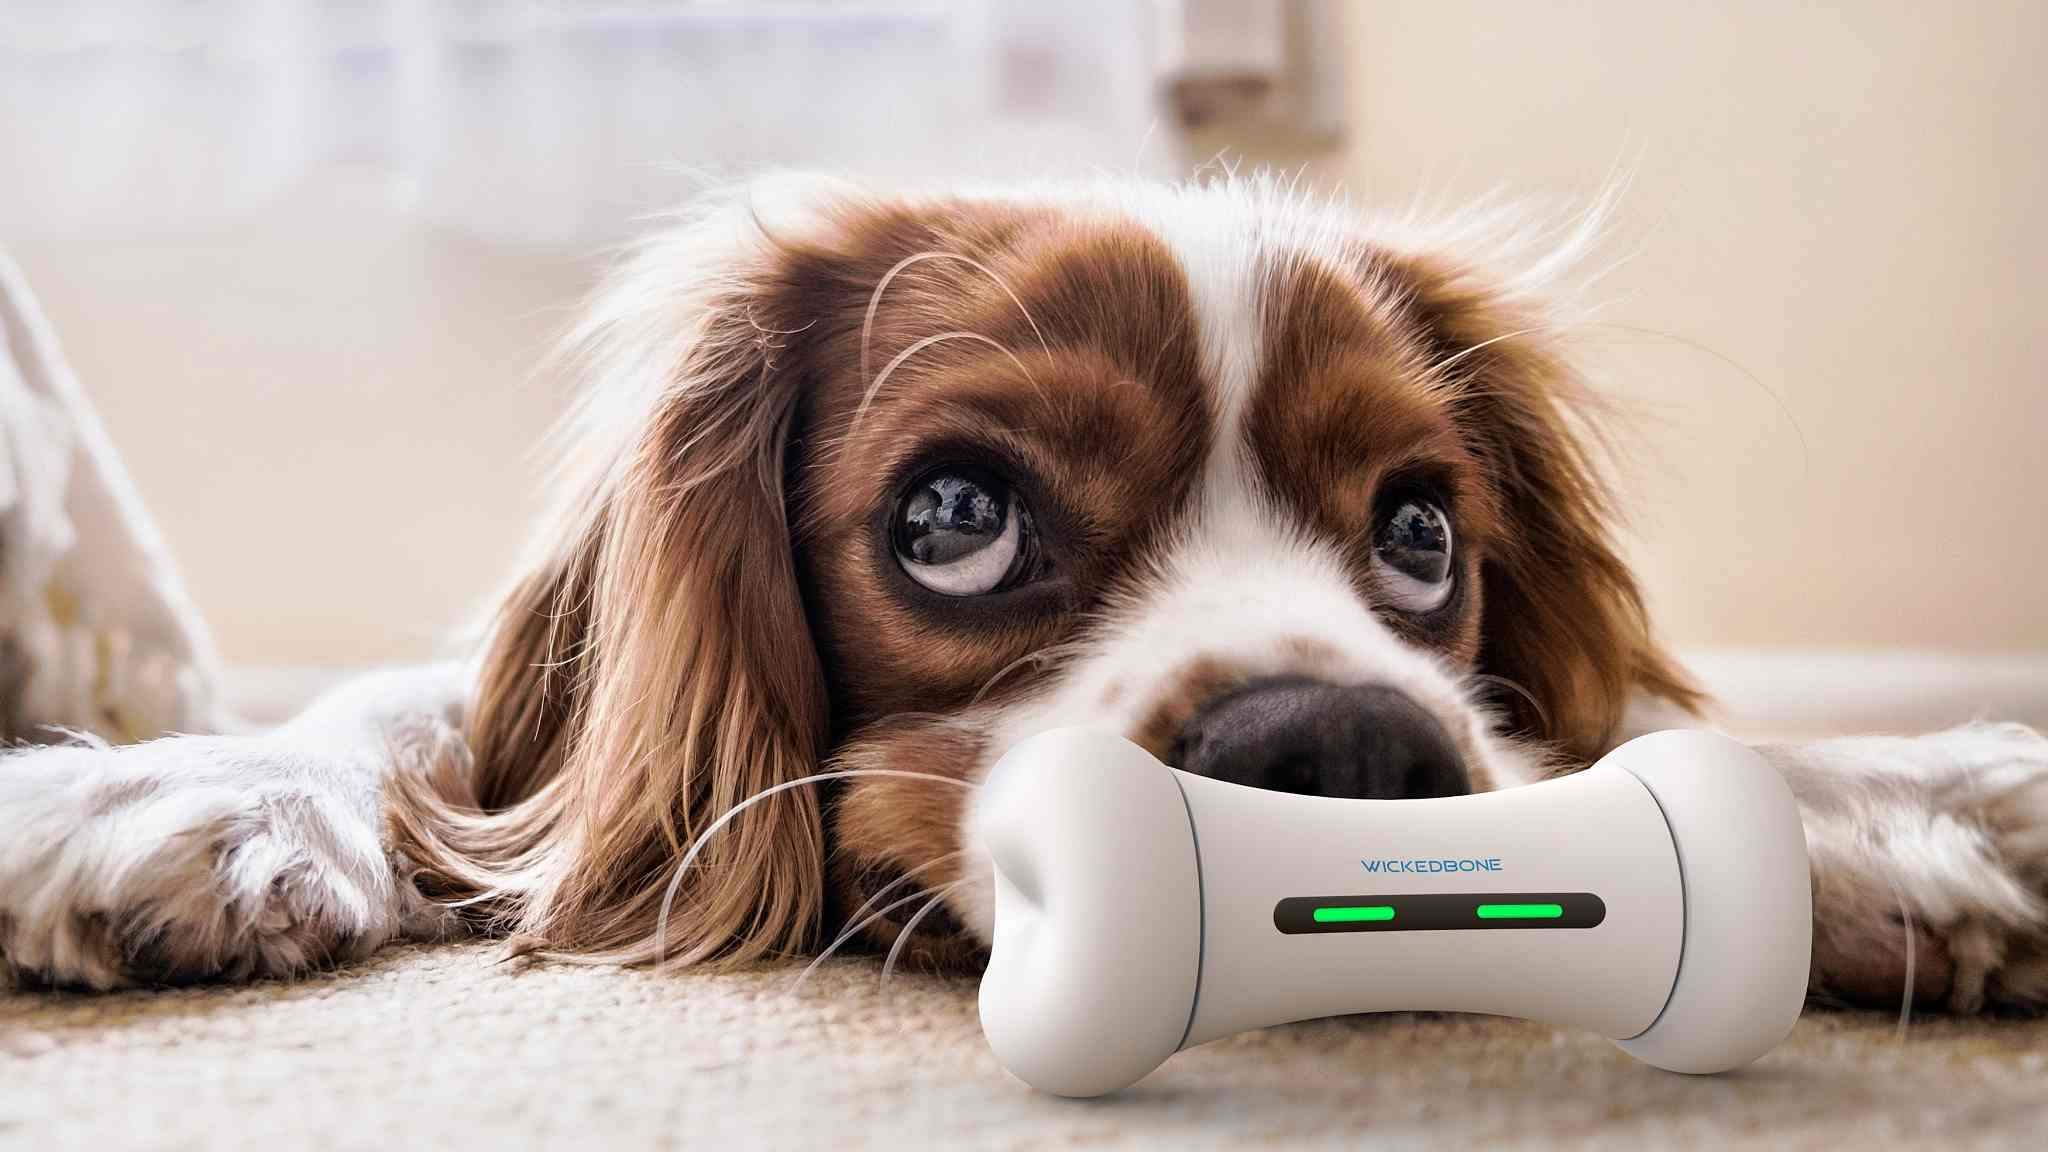 Smart new toy for puppies